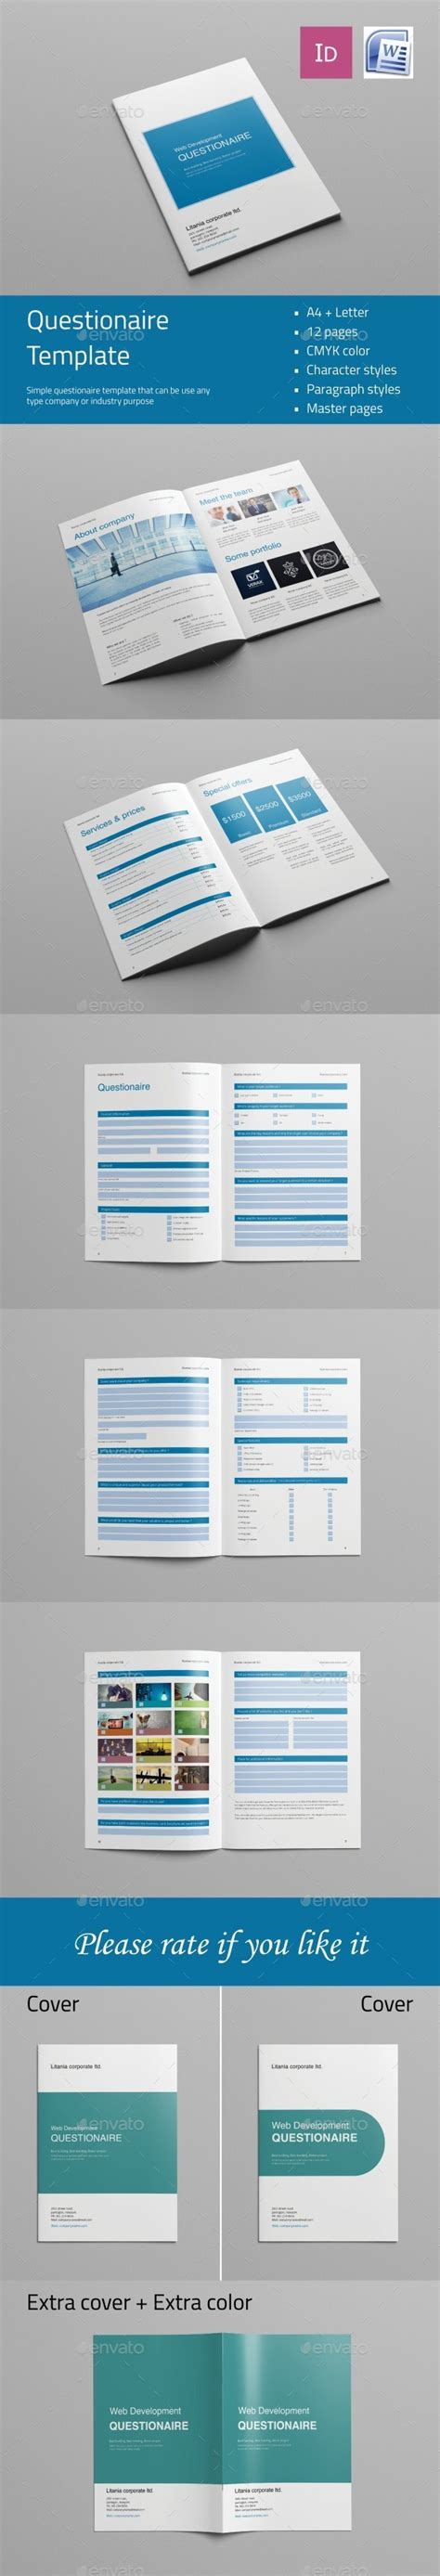 indesign template questionnaire web design questionnaire template indesign indd design